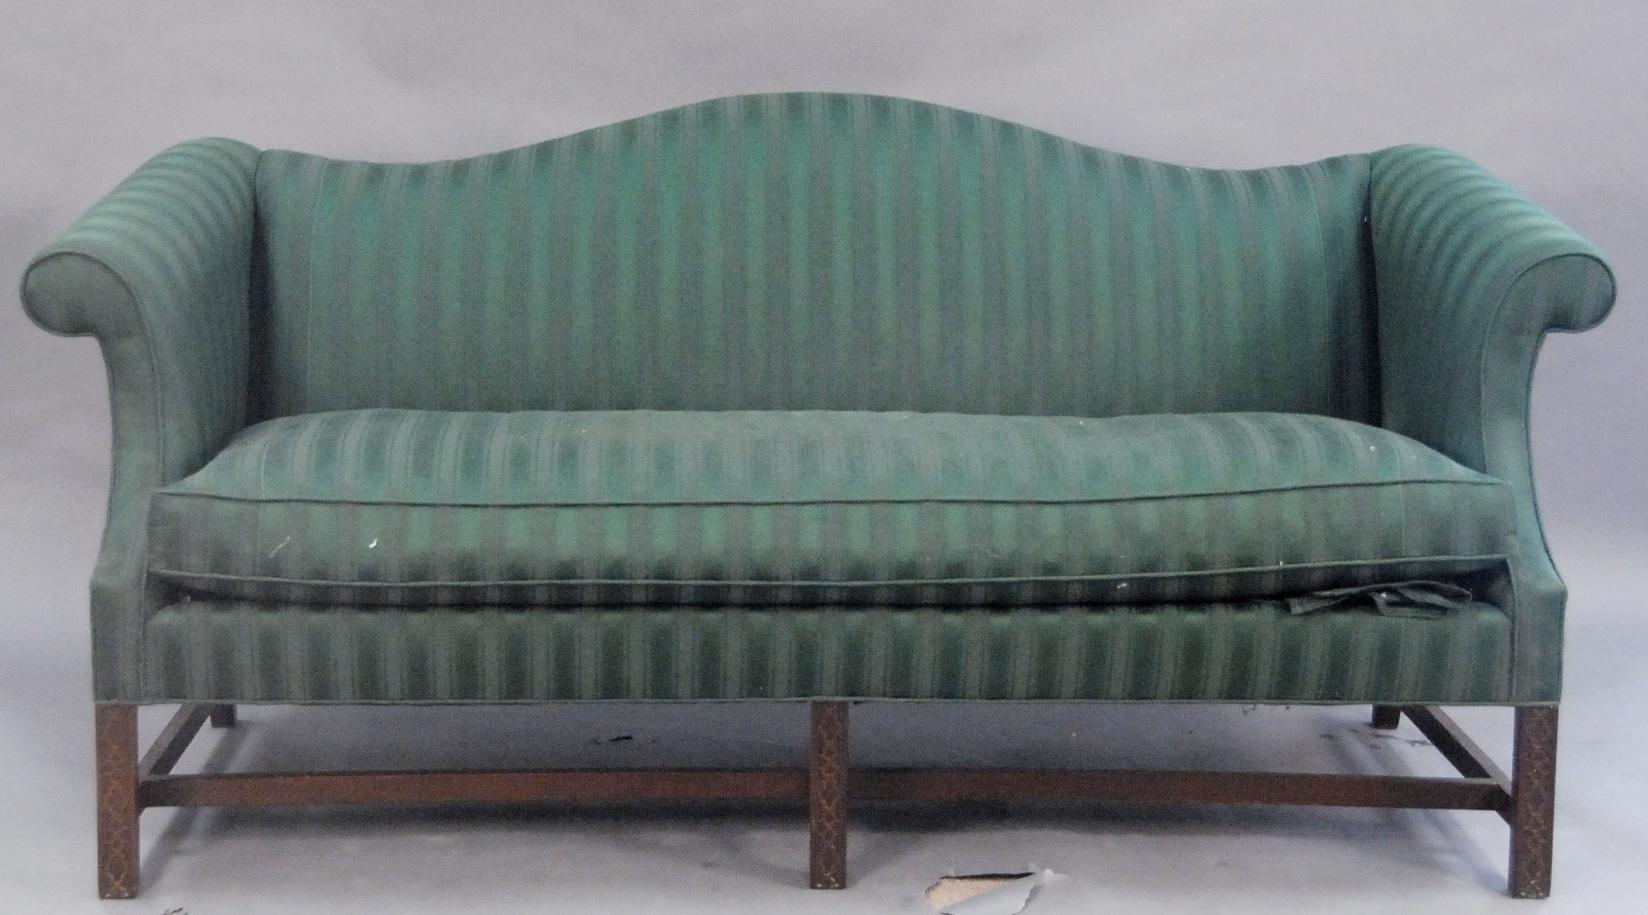 Auction Catalog – Nadeau's Auction Gallery Within Chippendale Camelback Sofas (Image 4 of 20)